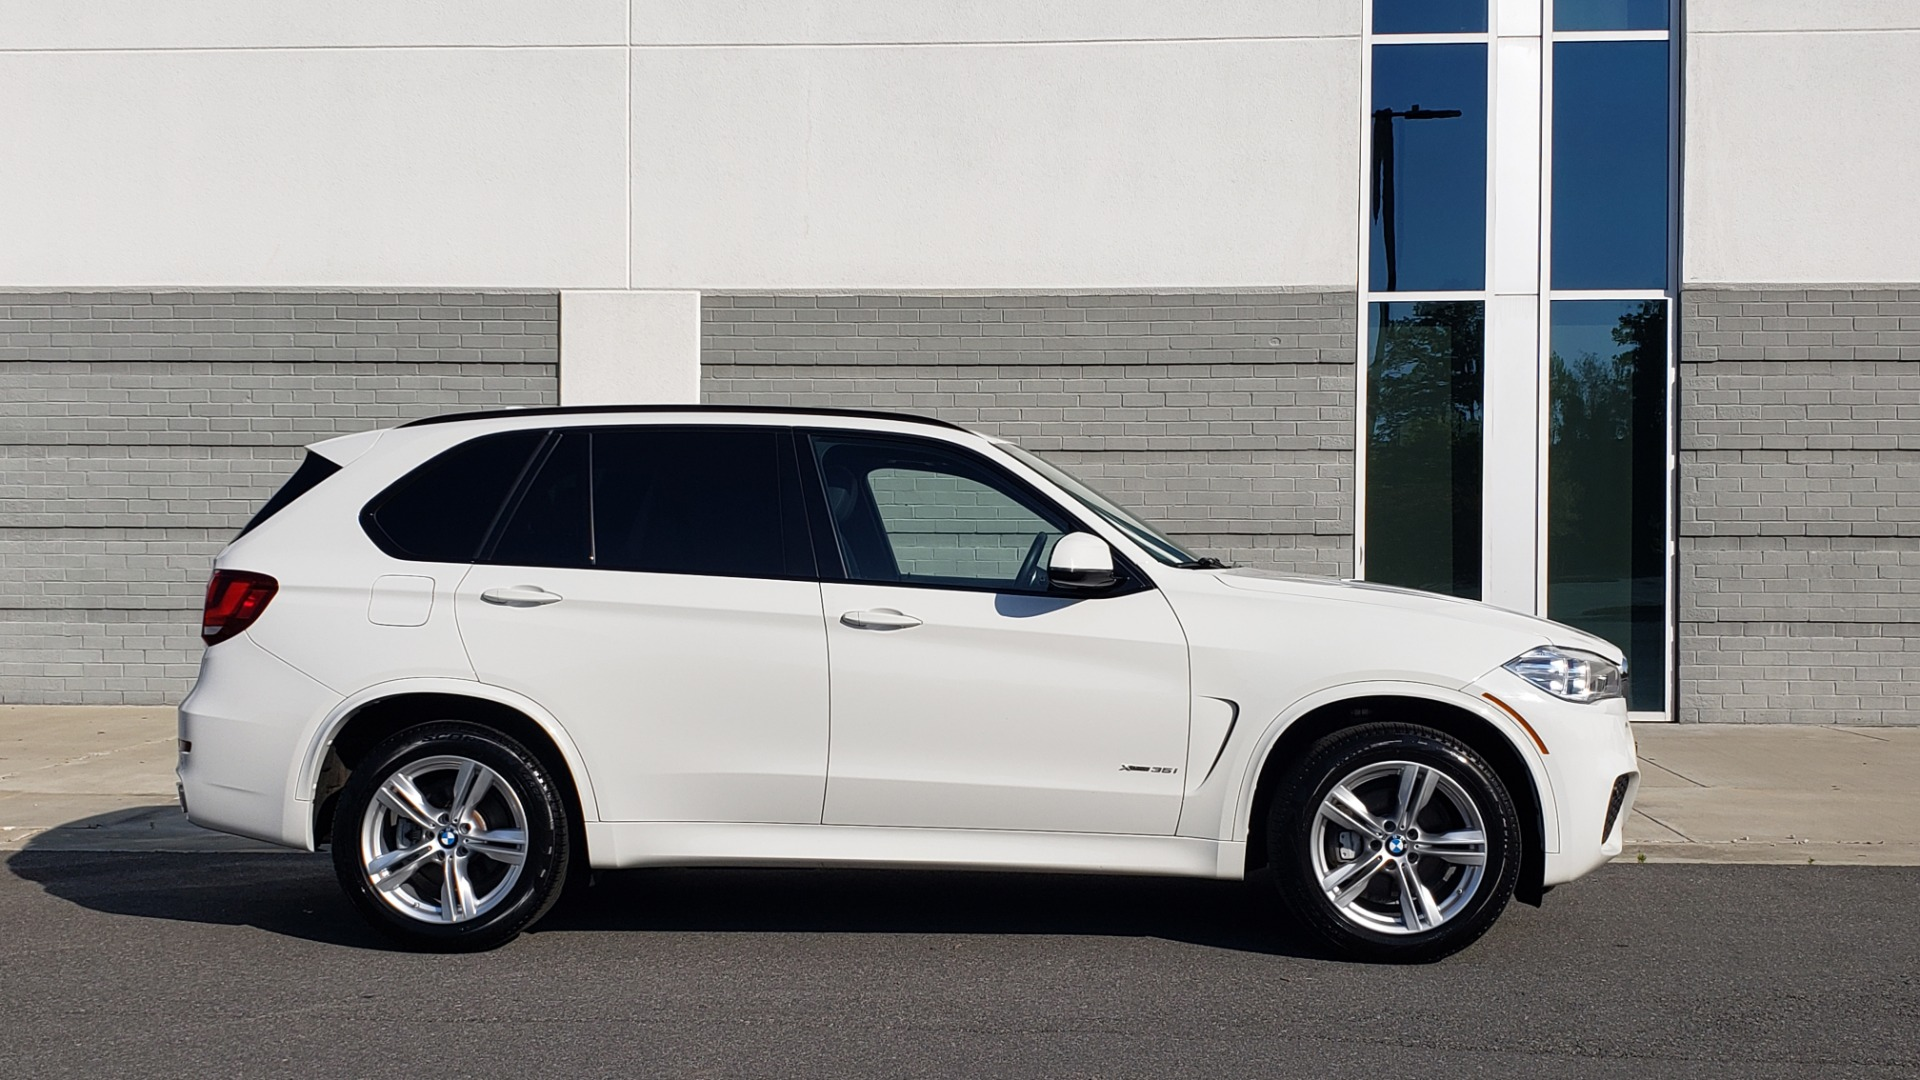 Used 2018 BMW X5 XDRIVE35I / M-SPORT / NAV / SUNROOF / H/K SND / REARVIEW for sale Sold at Formula Imports in Charlotte NC 28227 3